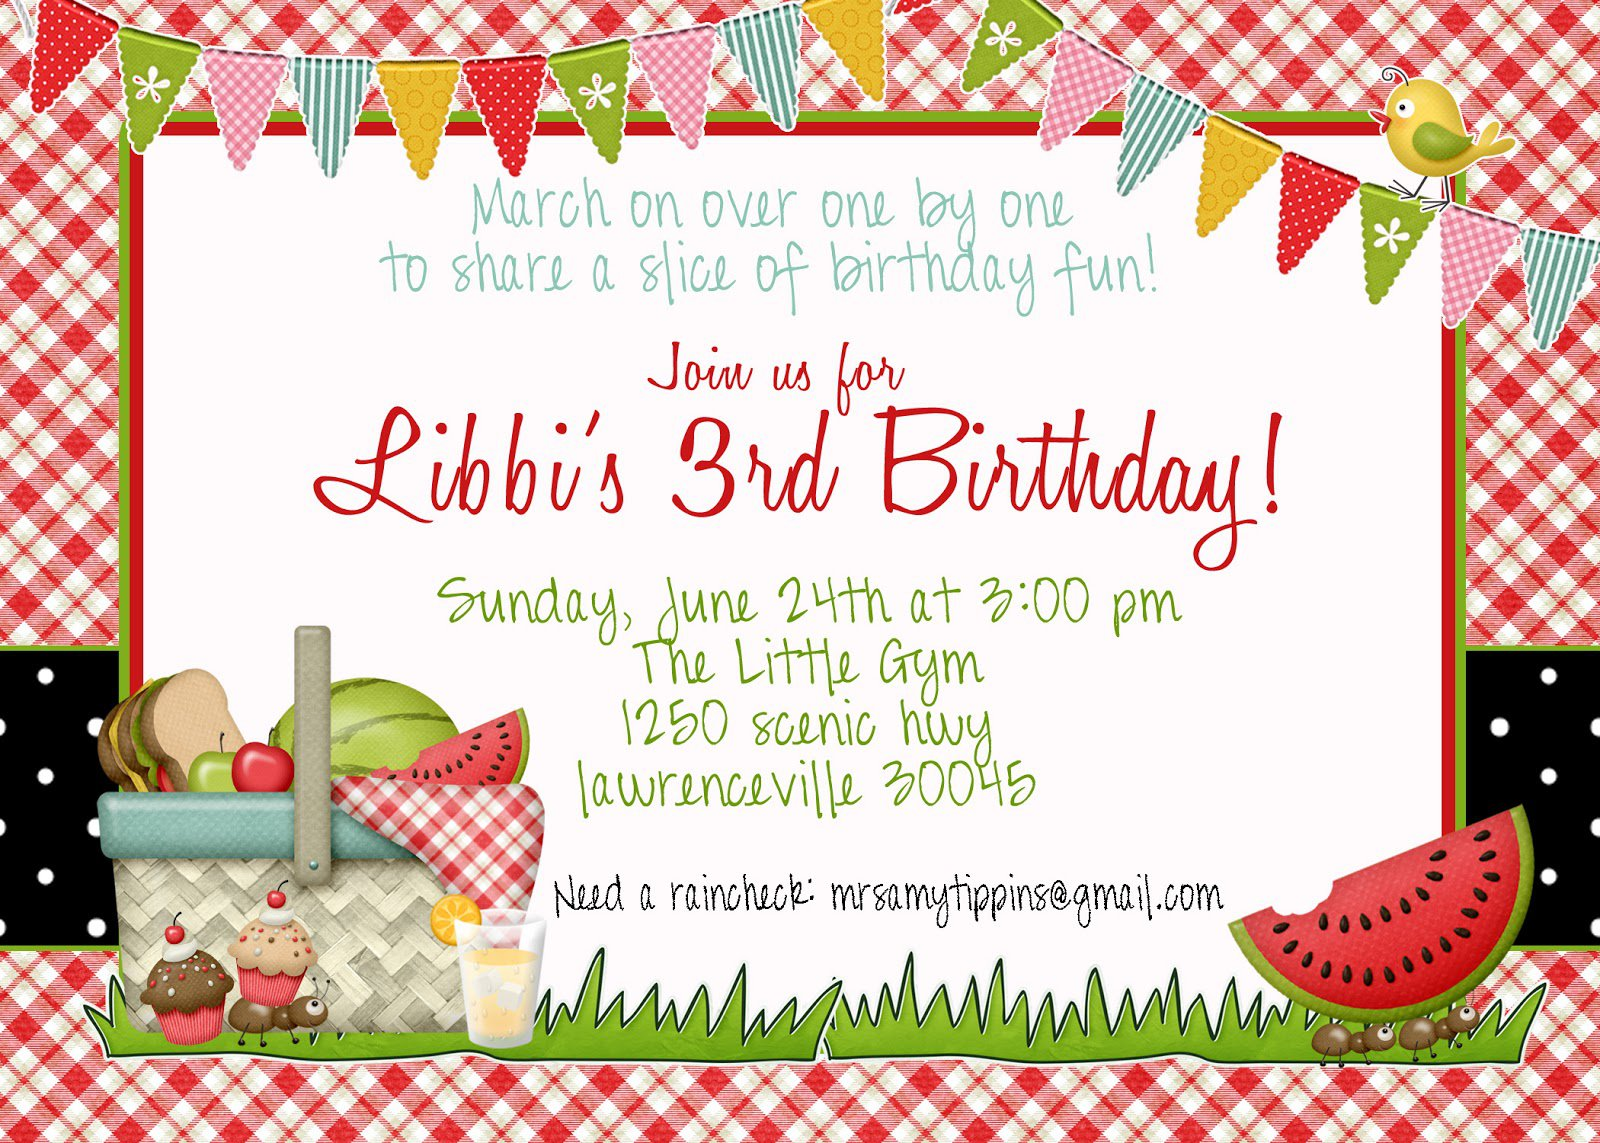 Beautiful birthday invitation border templates ivoiregion blank invitation templates nisartmackacom filmwisefo